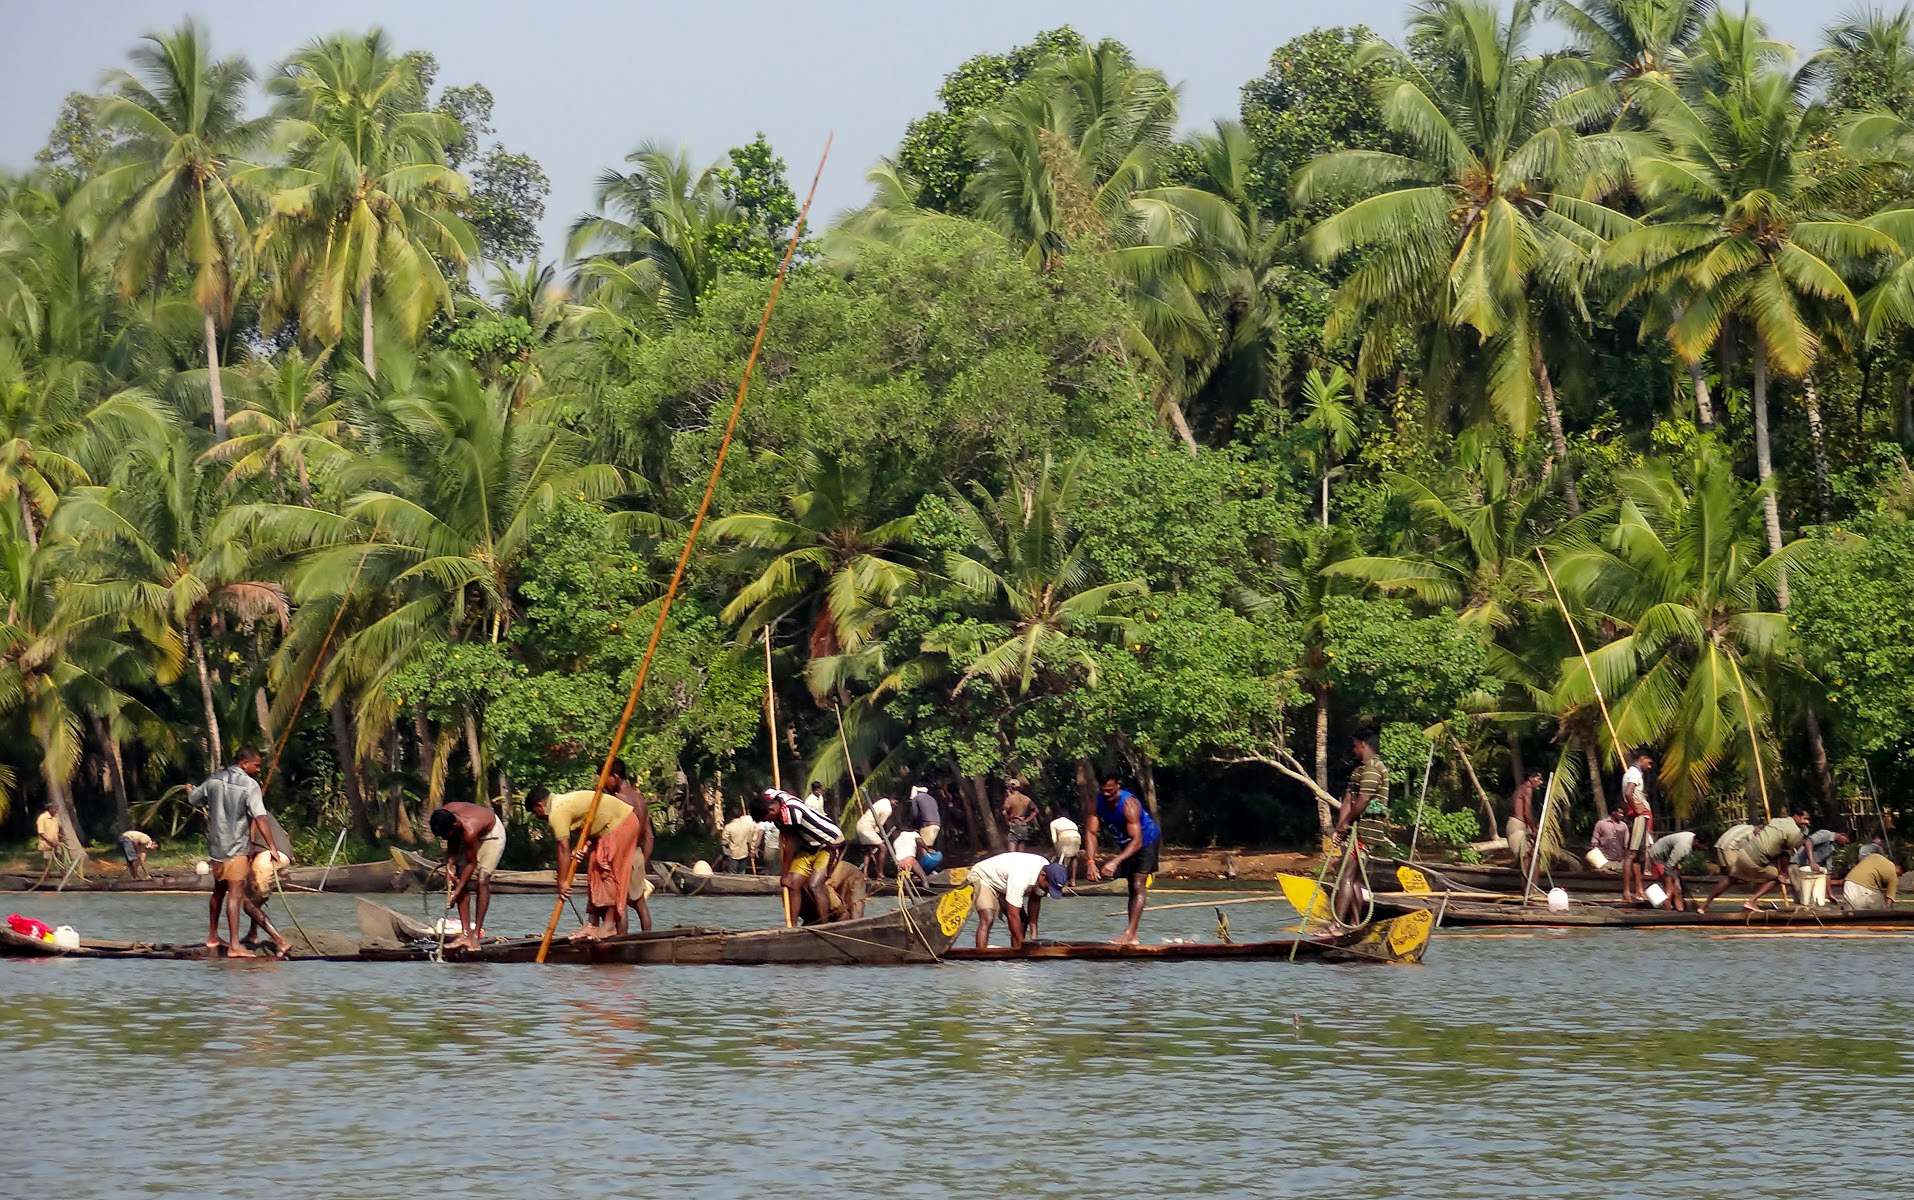 Indian men fishing from wooden boats in the Kappil Backwaters, Kerala, India